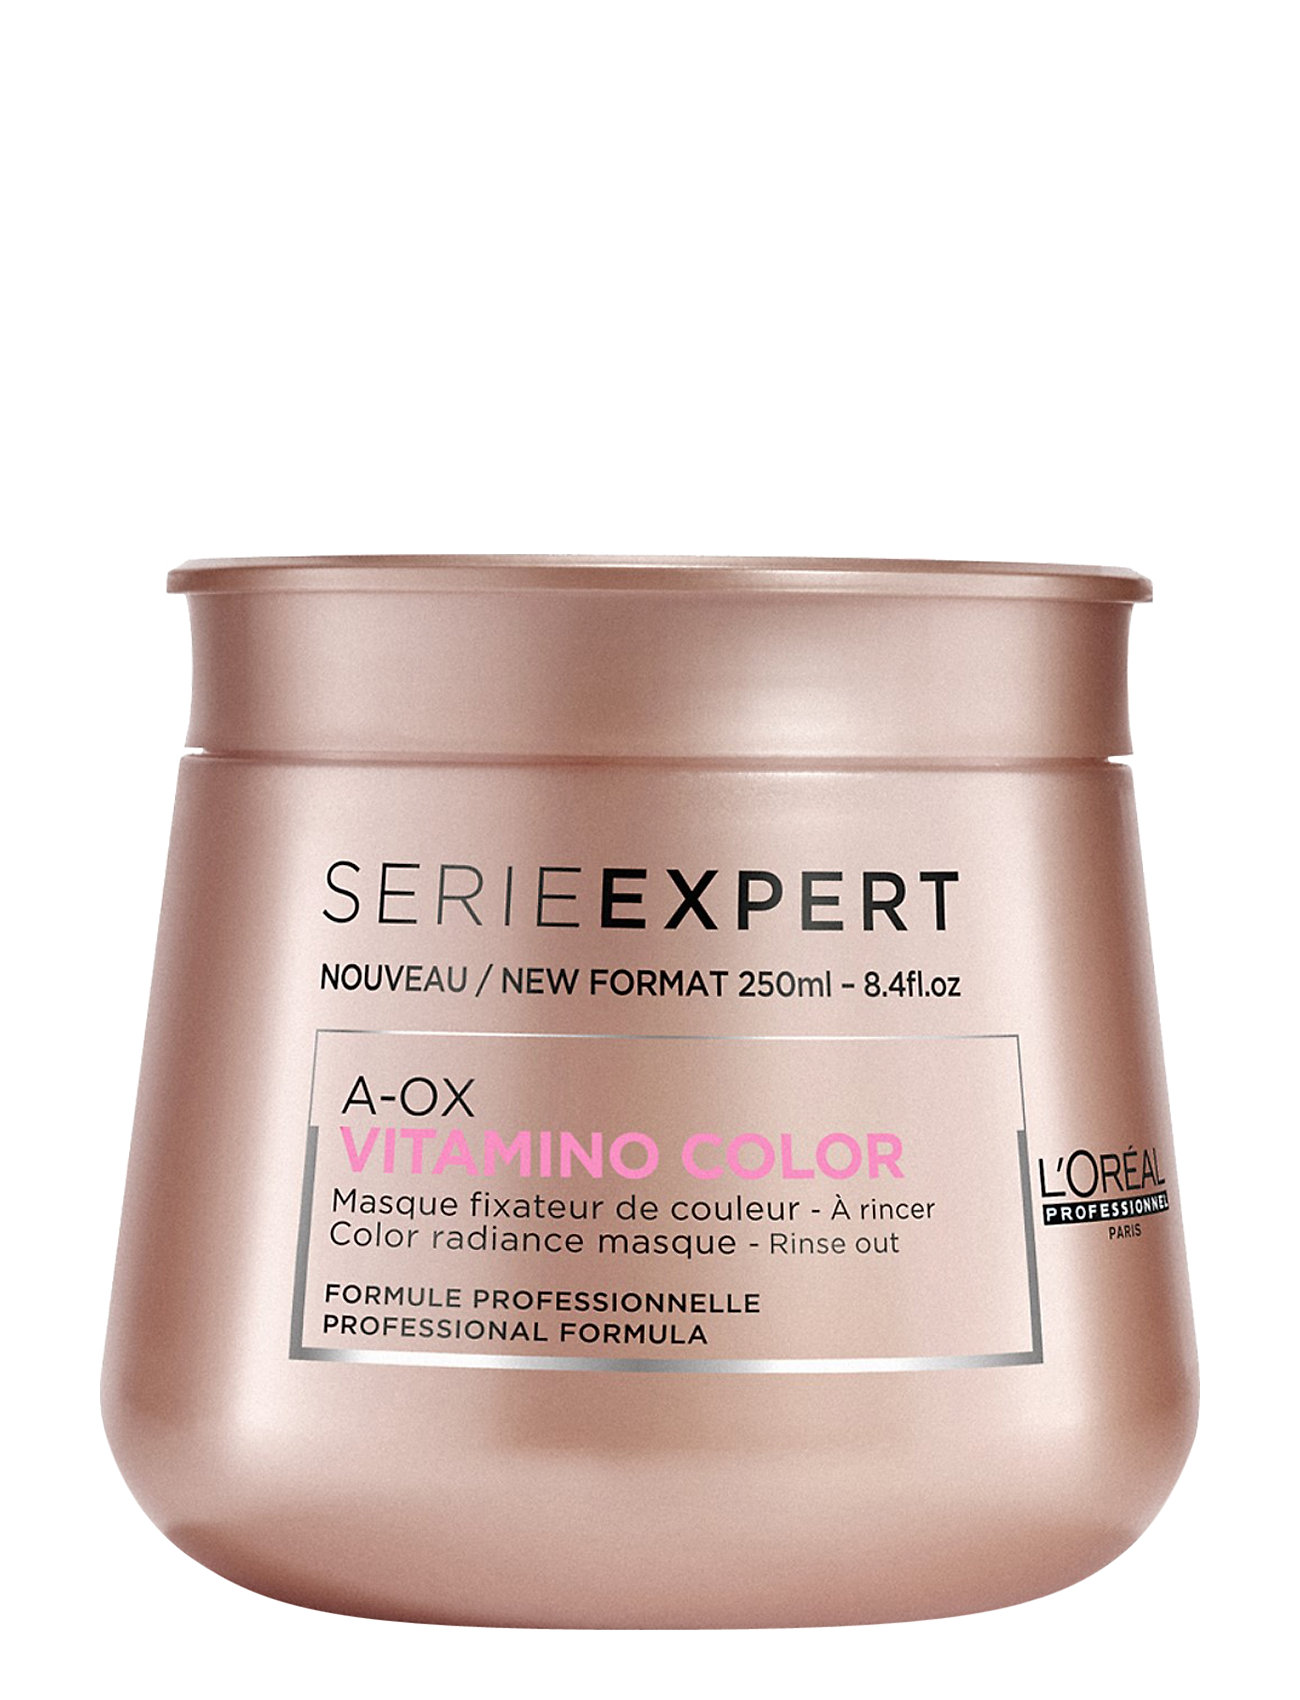 L'Oréal Professionnel L'Oréal Professionnel Vitamino Color Mask - CLEAR